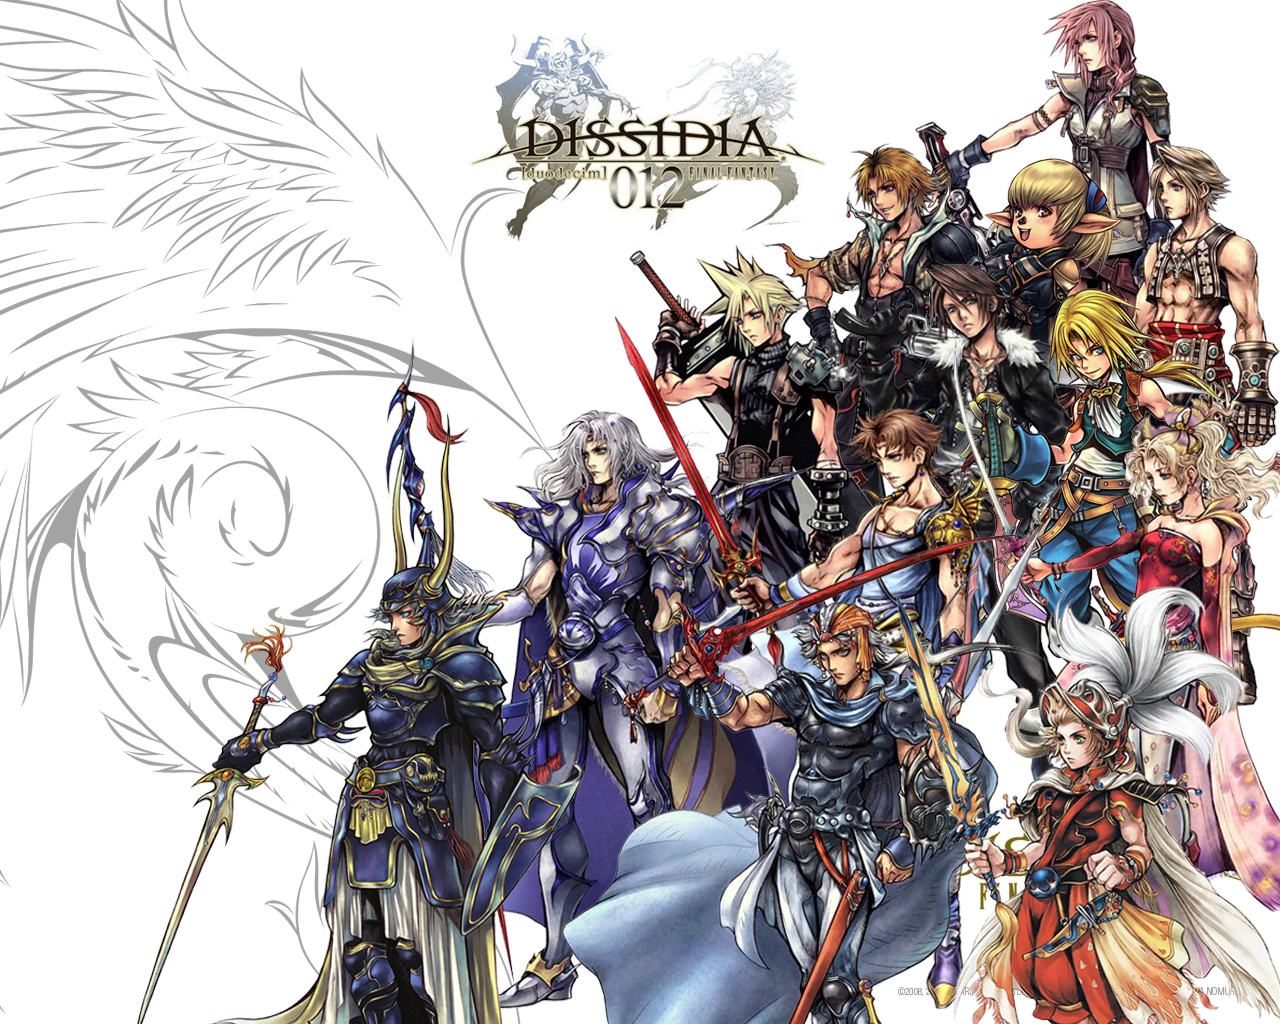 Amazon.com: Dissidia 012 [duodecim] Final Fantasy - Sony PSP ...